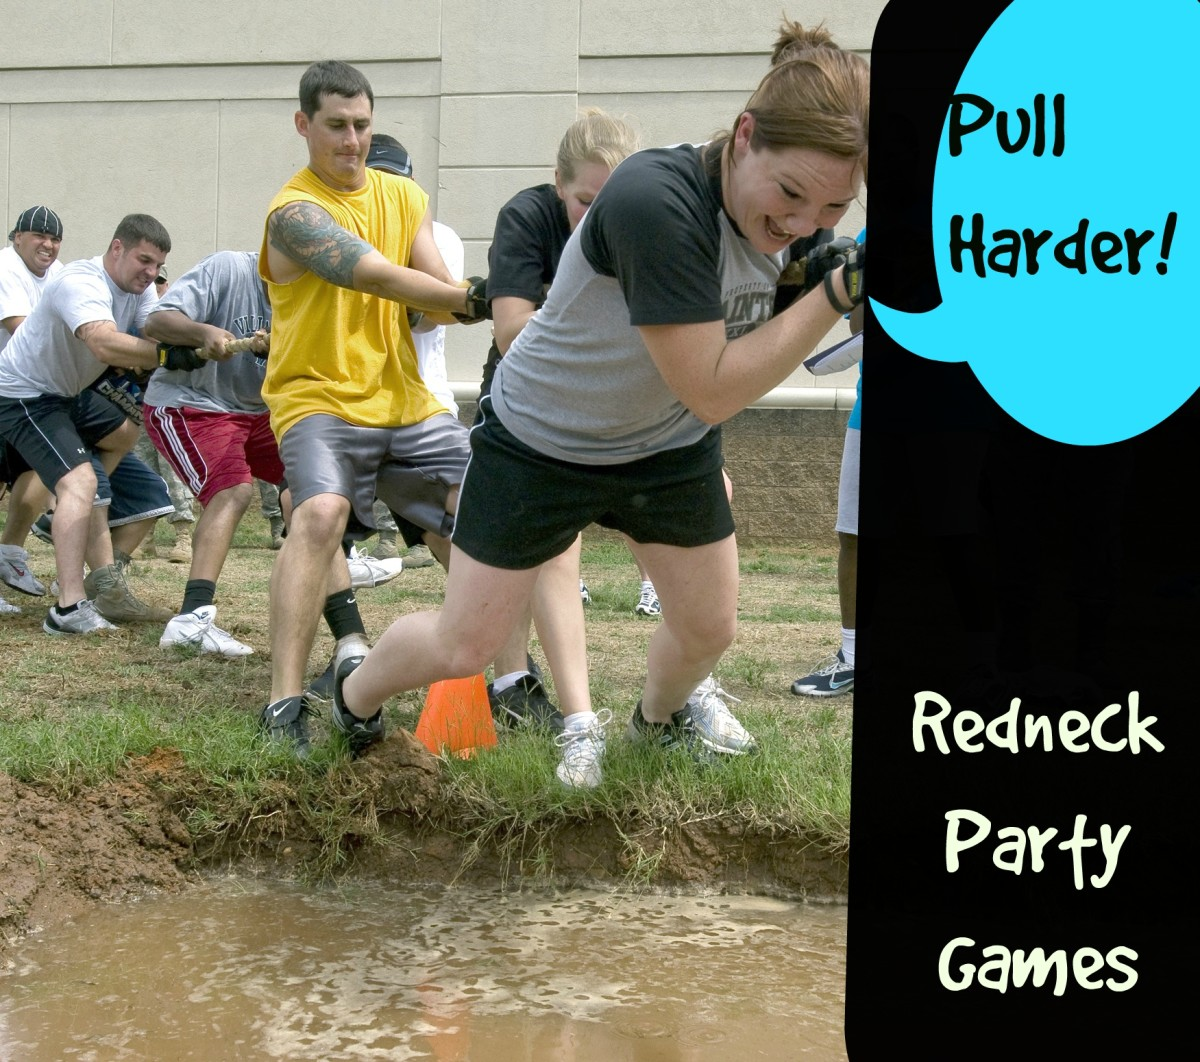 redneck party games hubpages